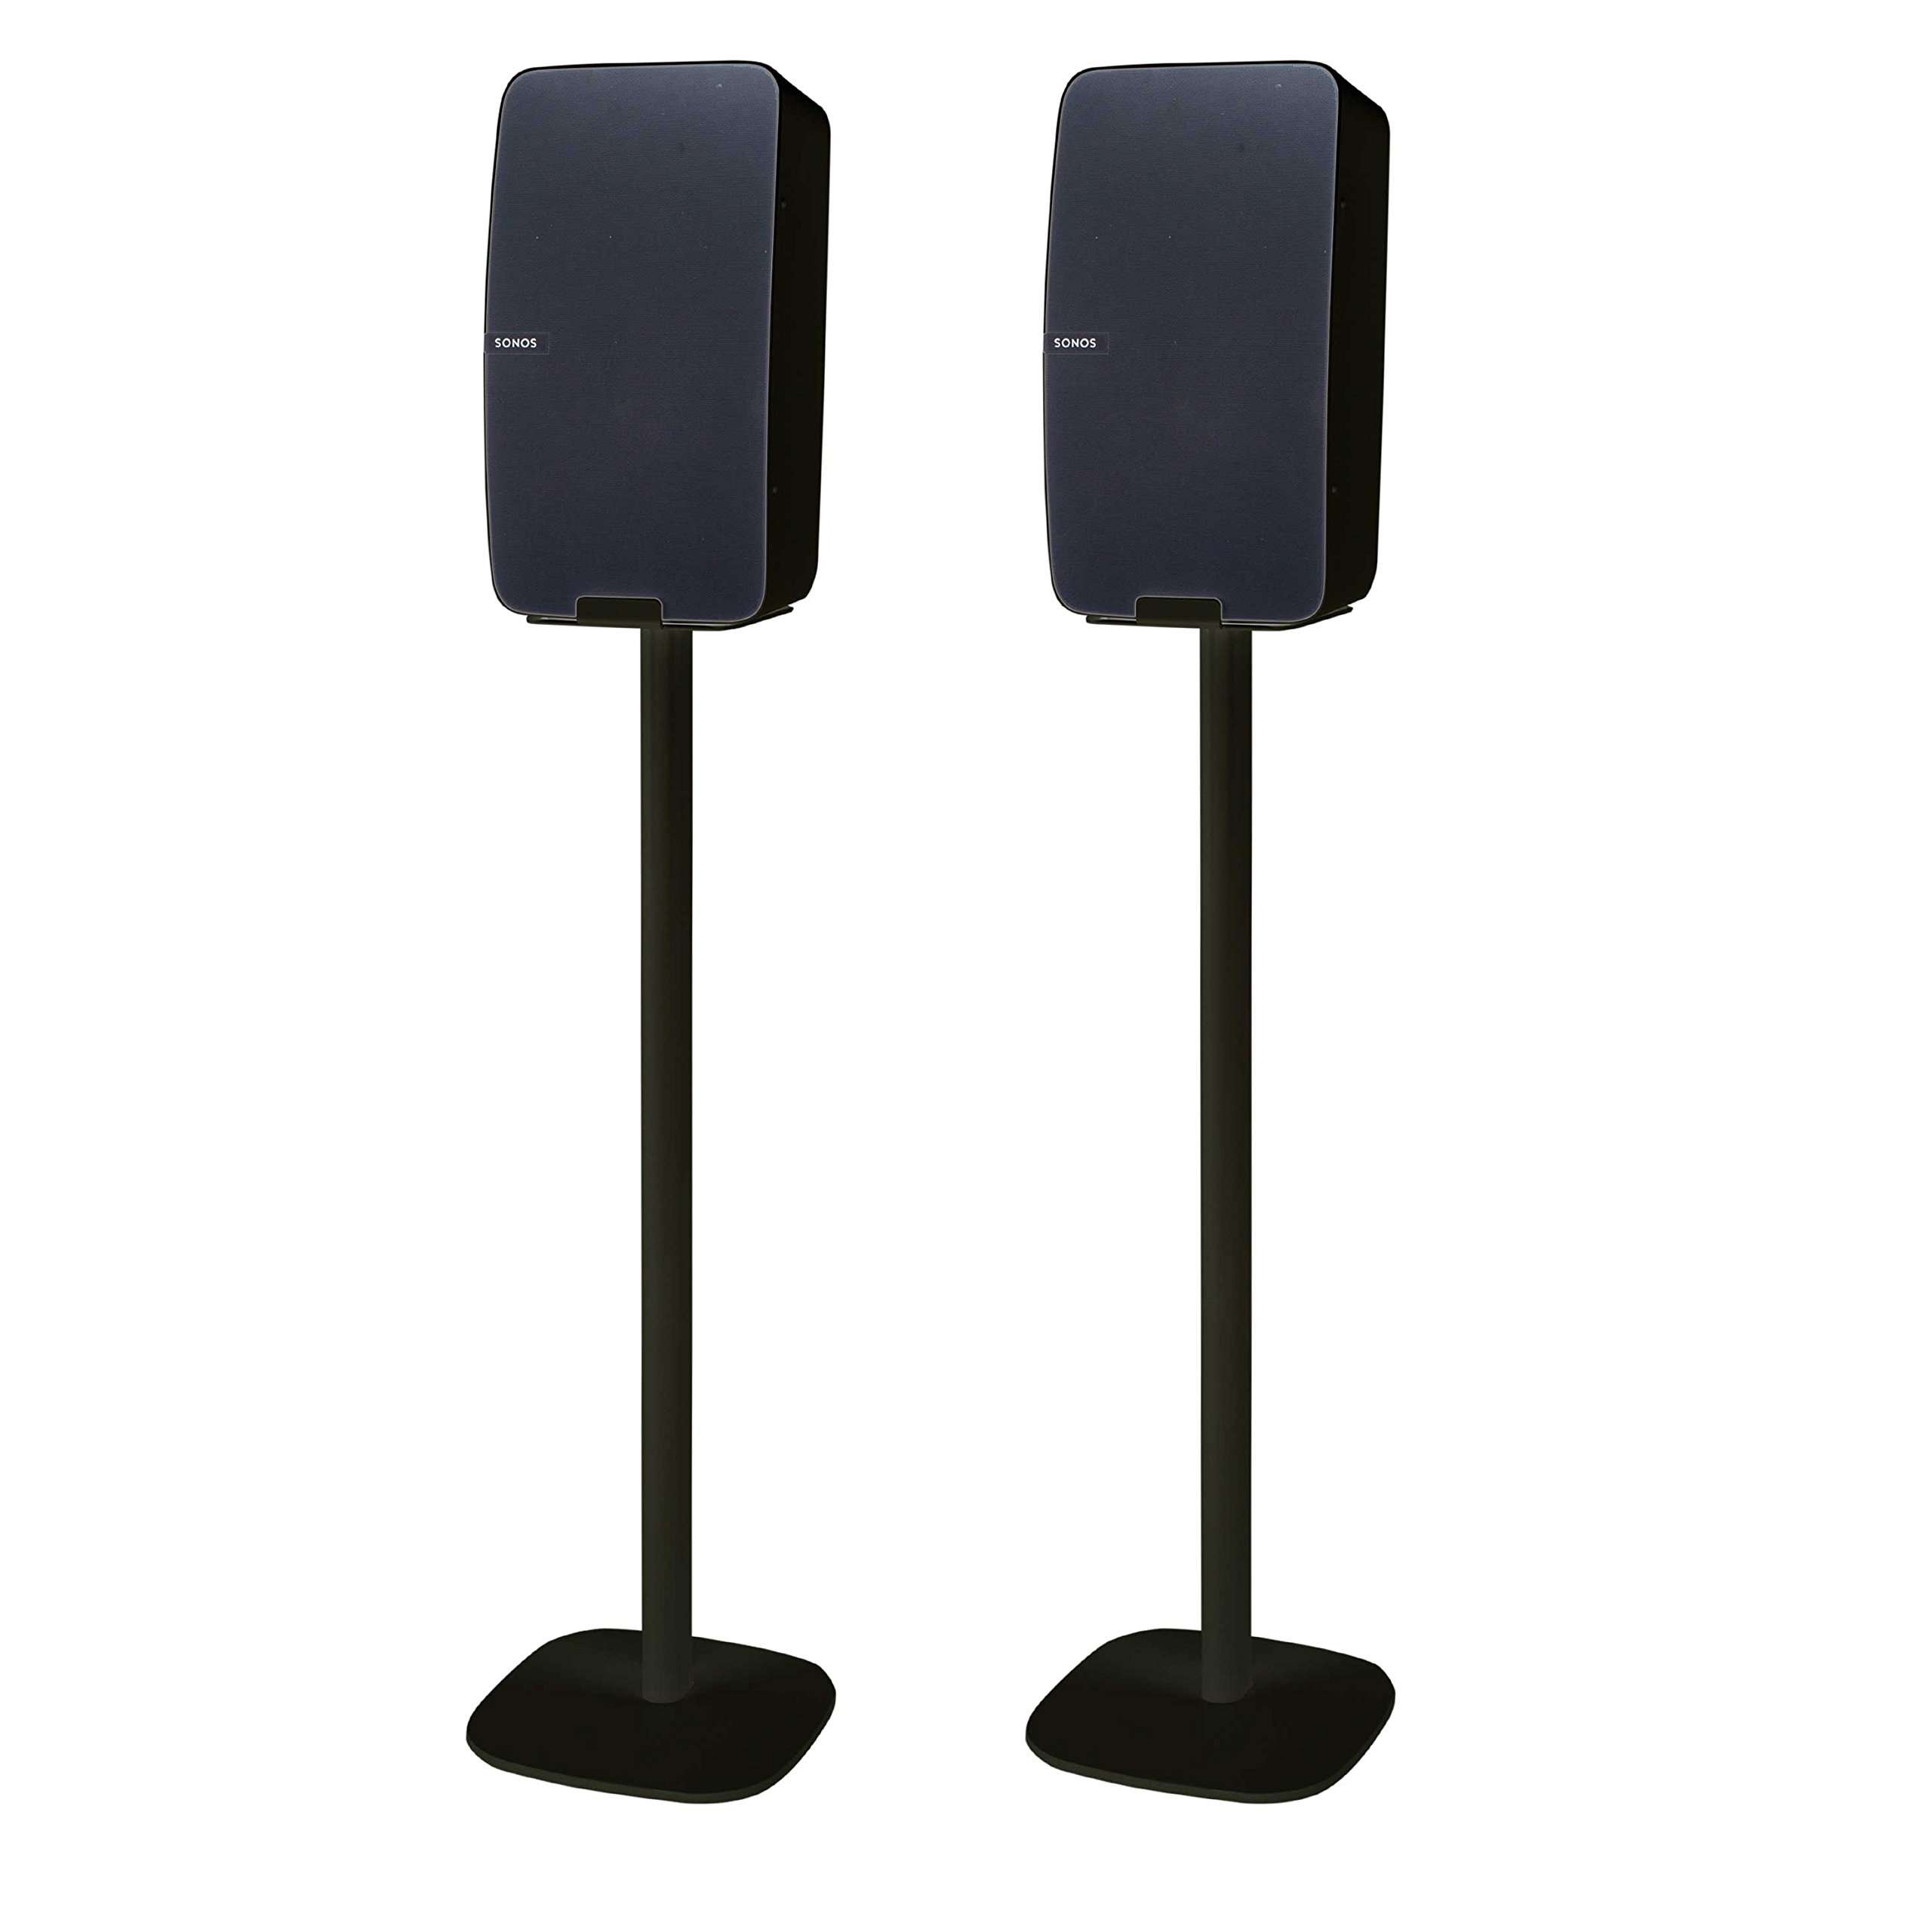 Vebos Floor Stand Sonos Play 5 gen 2 Black Set - Vertical en Optimal Experience in Every Room - Compatible with Your Sonos Play 5 Speaker by Vebos